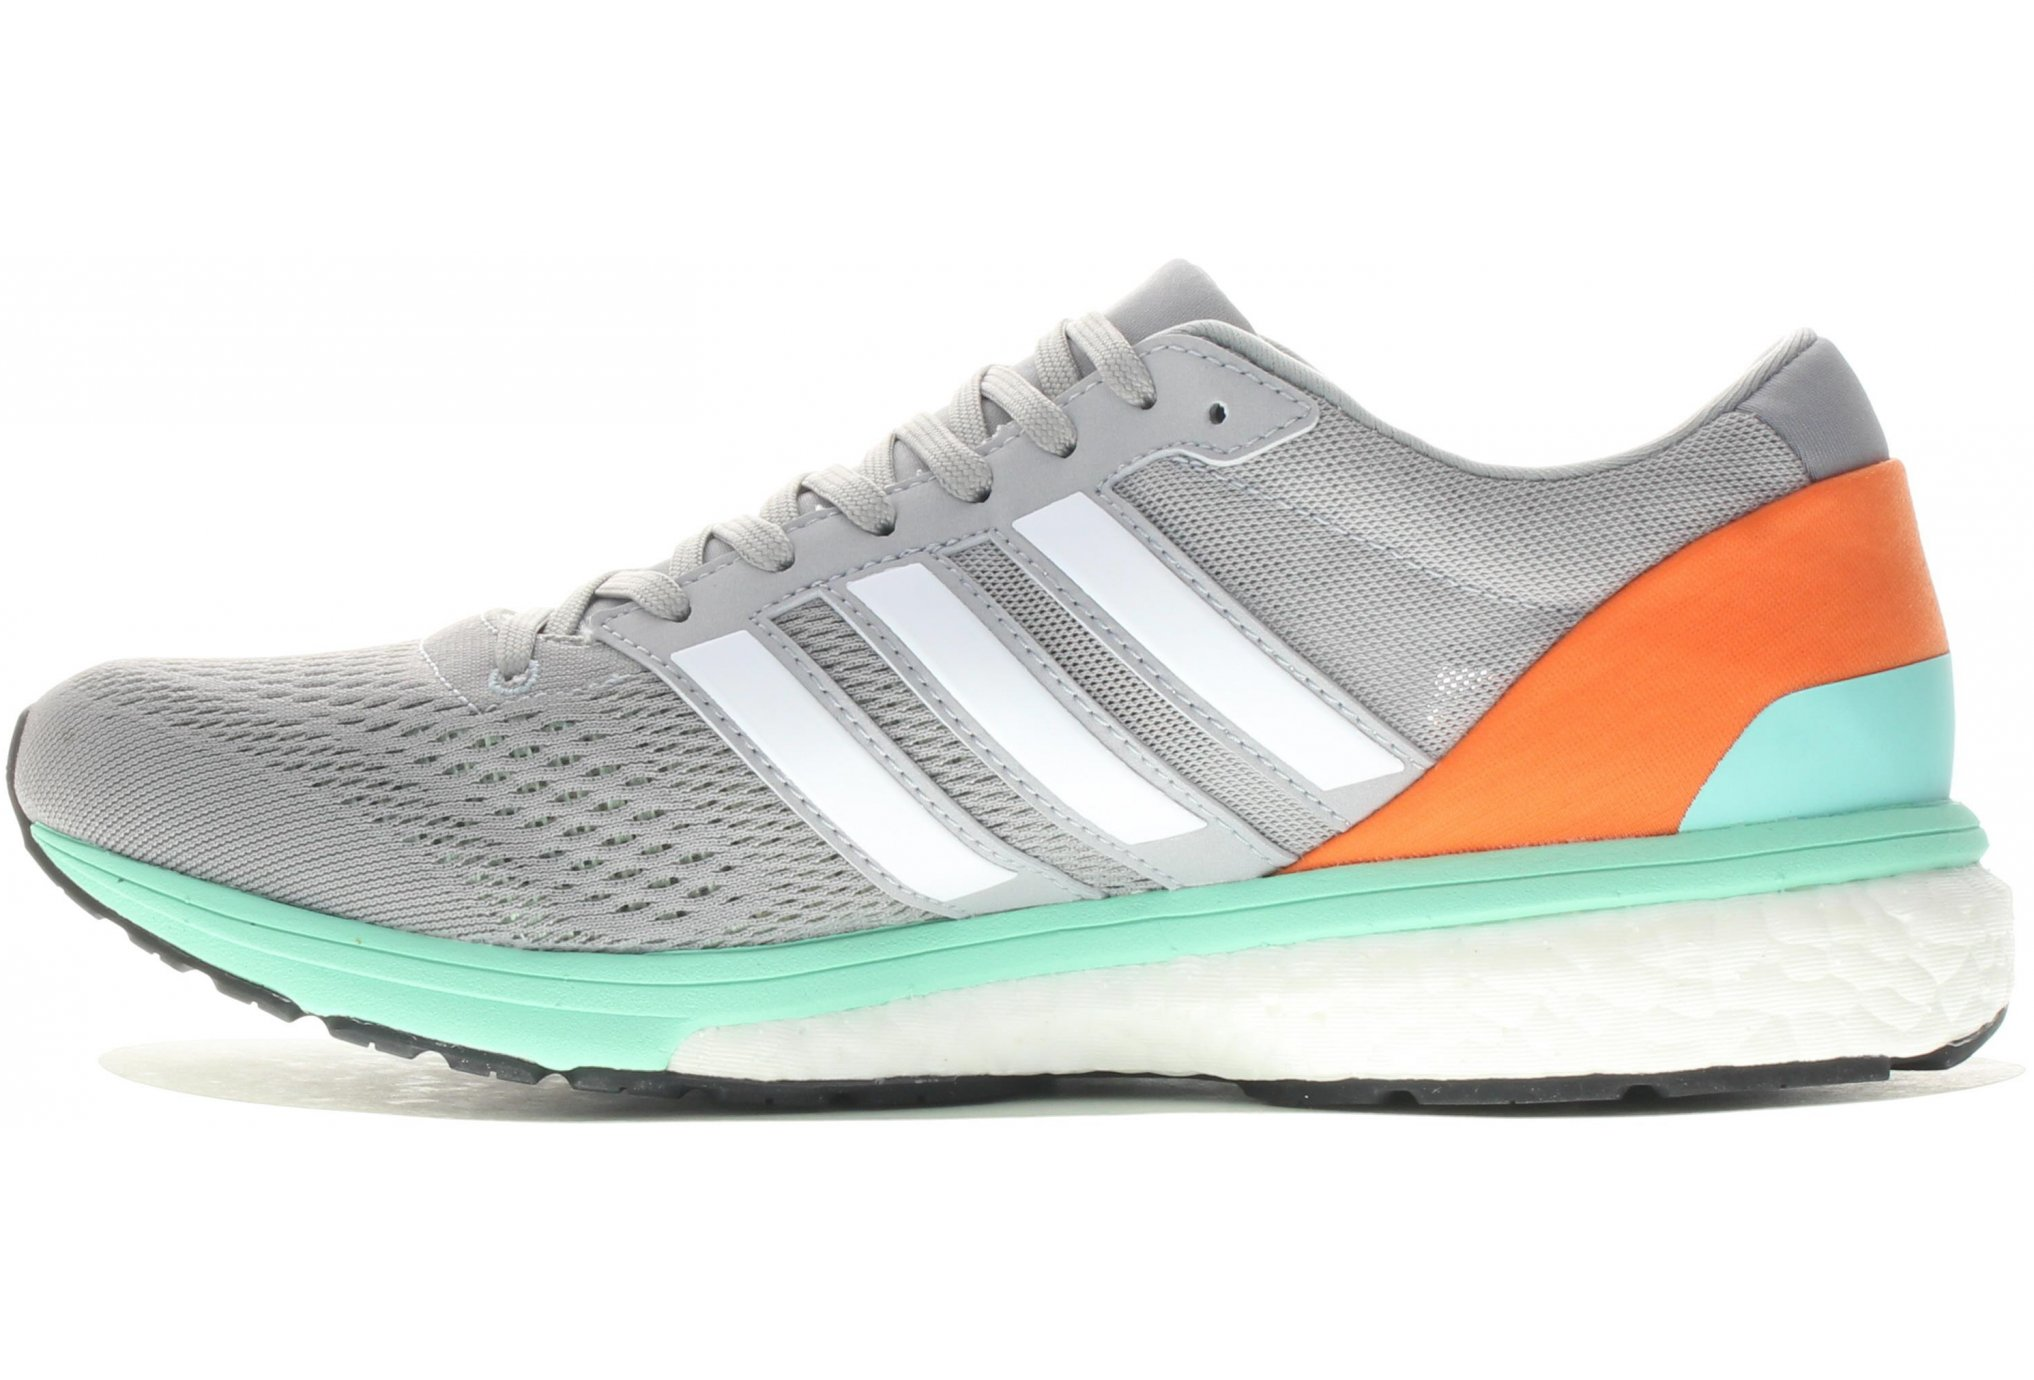 adidas-adizero-boston-boost-6-w-chaussures-running-femme ...